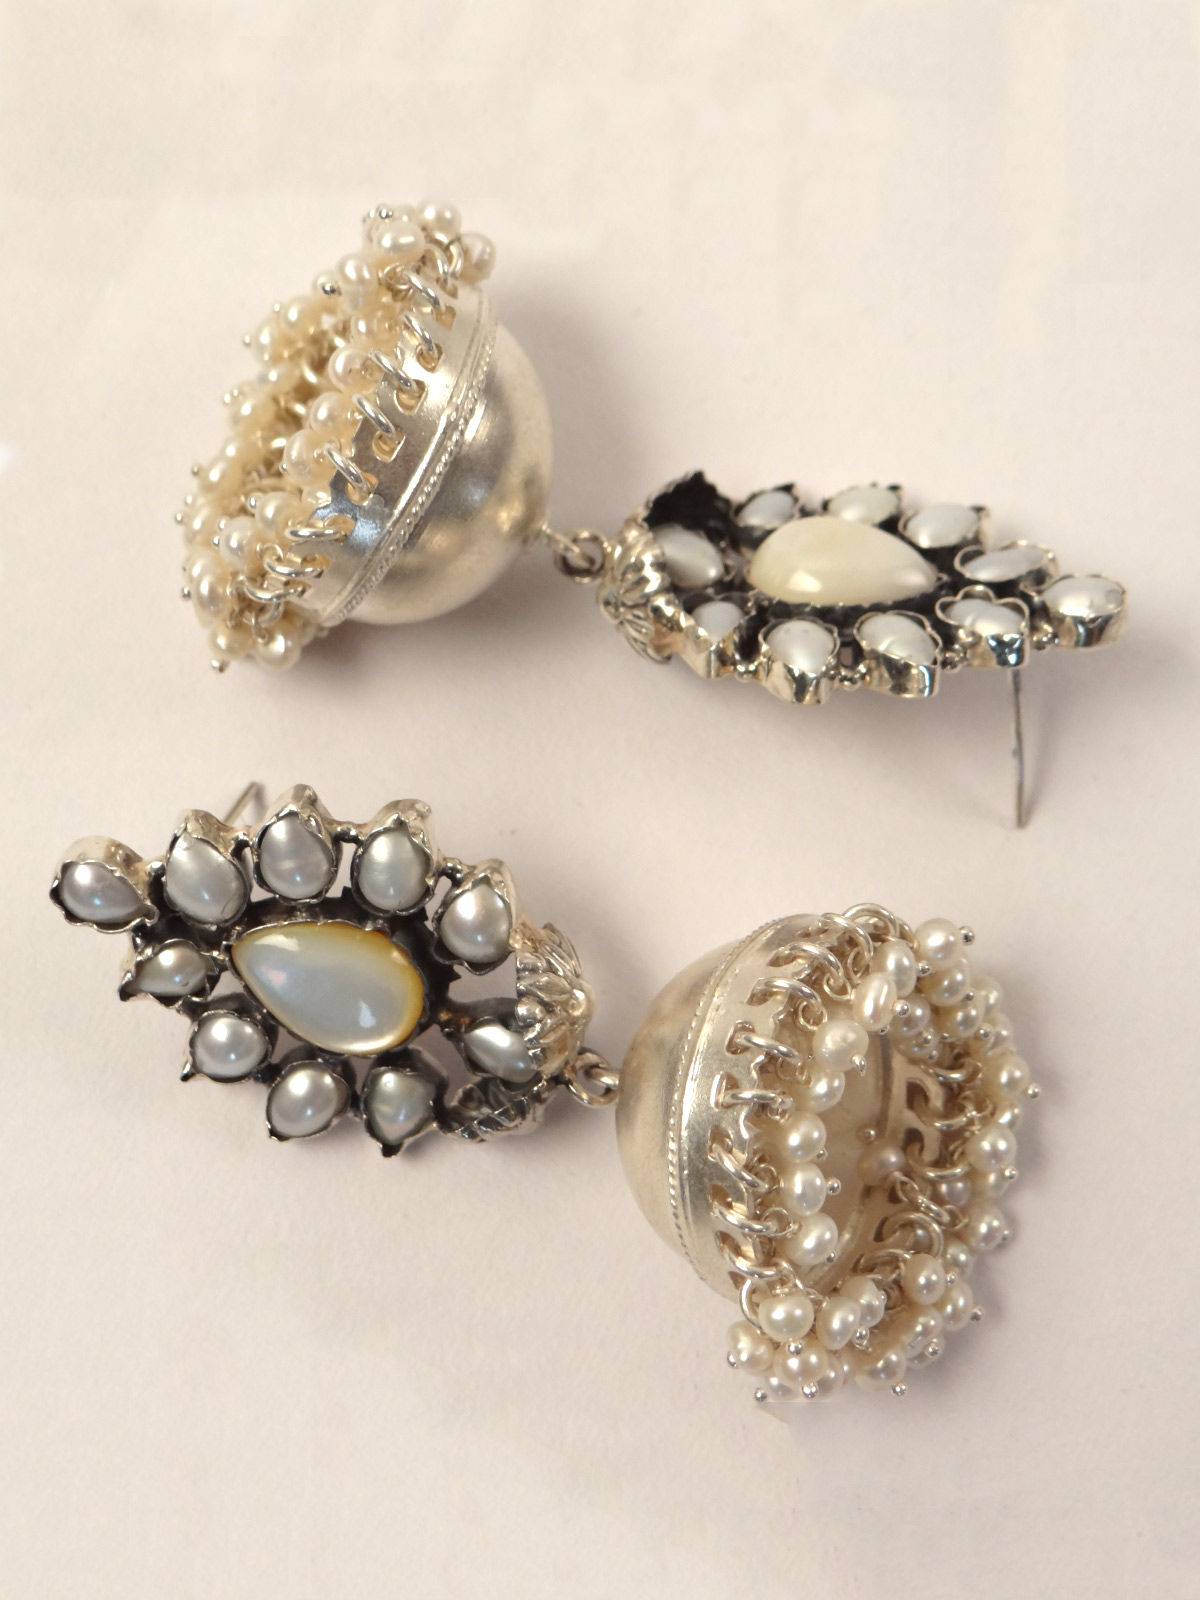 Indian August pure silver jhumka earrings